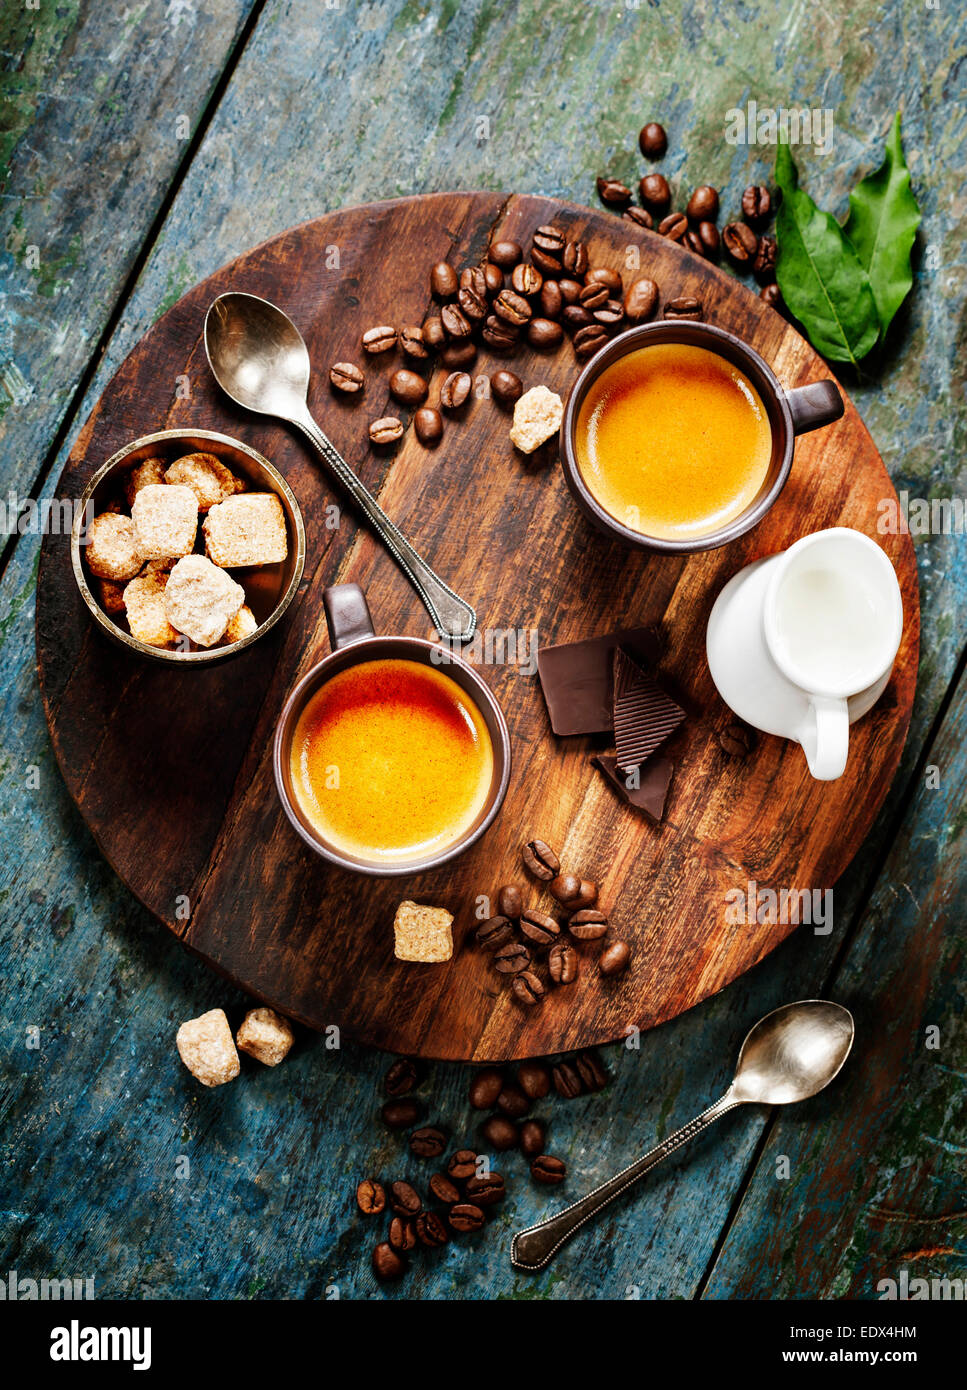 Coffee composition on wooden rustic background - Stock Image